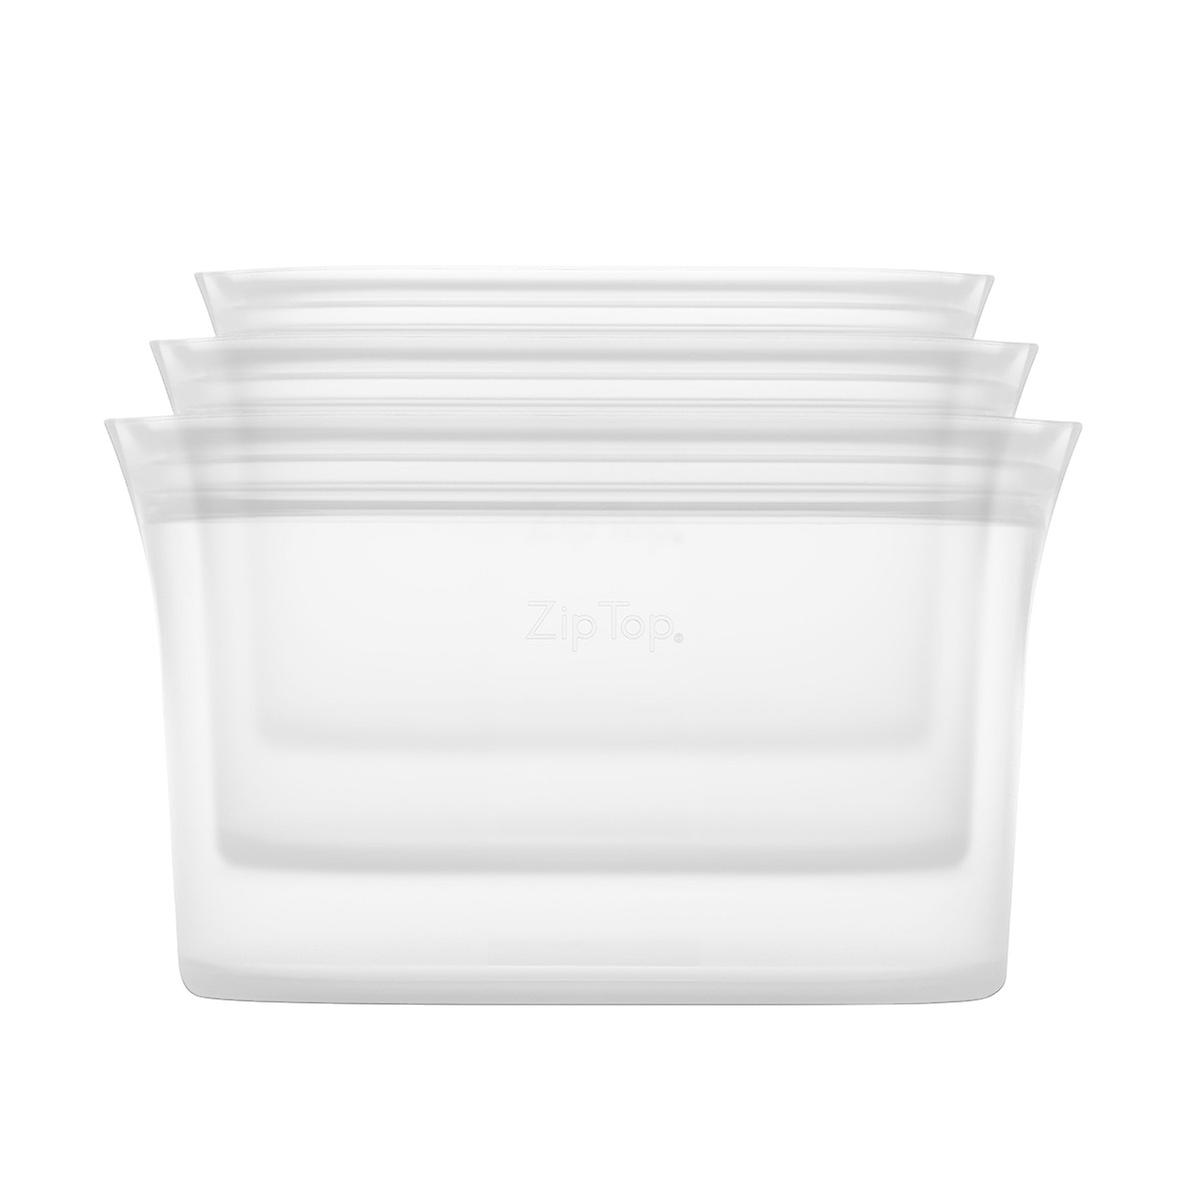 Zip Top Reusable Silicone Dish Set of 3